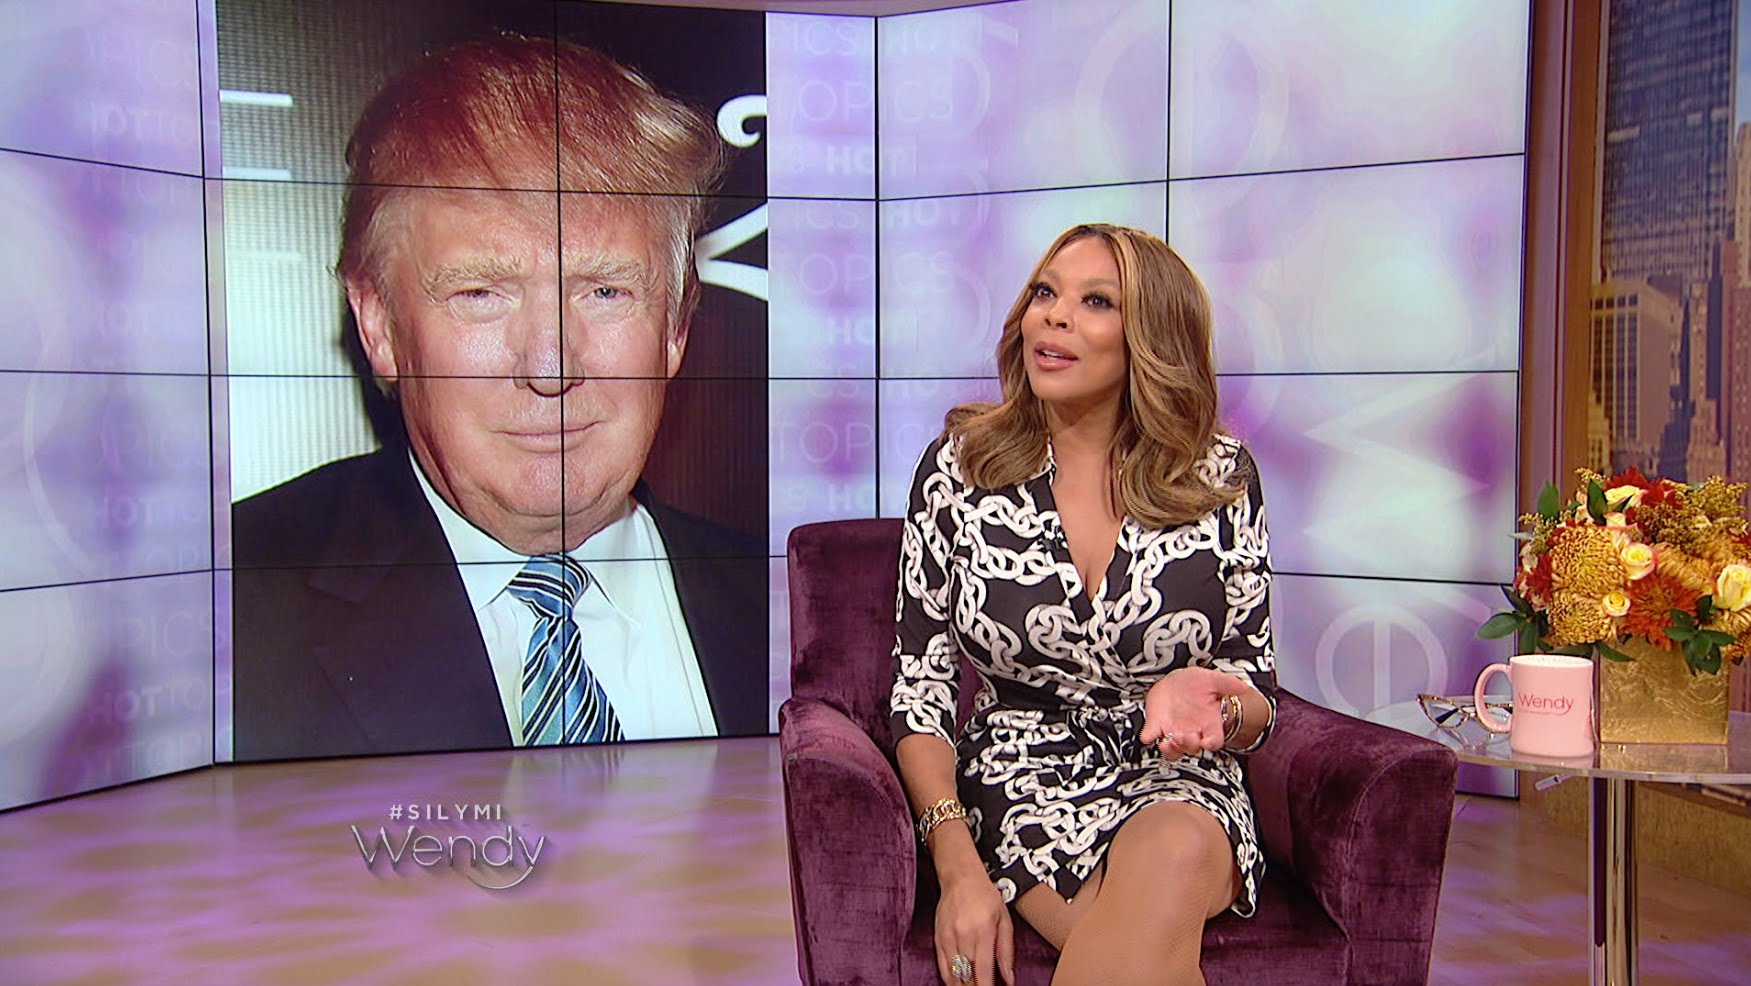 Wendy Williams Receives Backlash After Saying That Donald Trump Has The Right To Investigate The Election